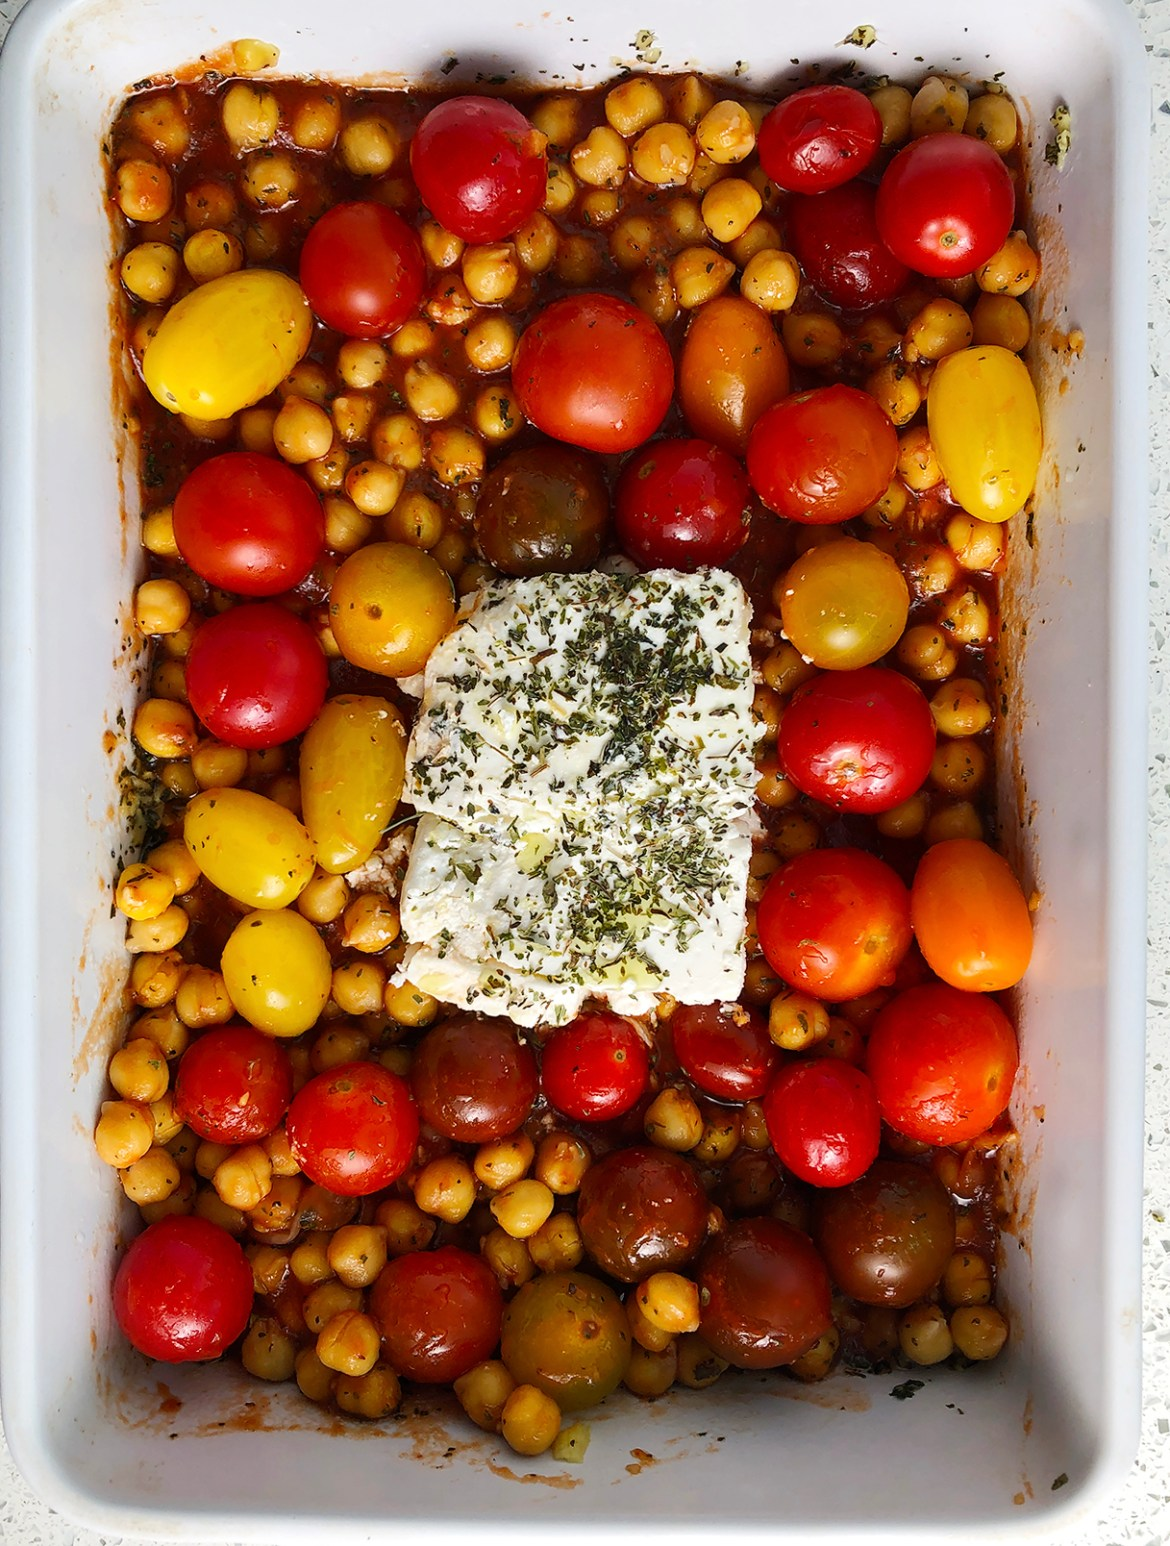 Top down image of white casserole dish with unbaked version of Chickpea Feta Bake, showing yellow and red cherry tomatoes, chickpeas, and feta cheese sprinkled with dried mint and olive oil.